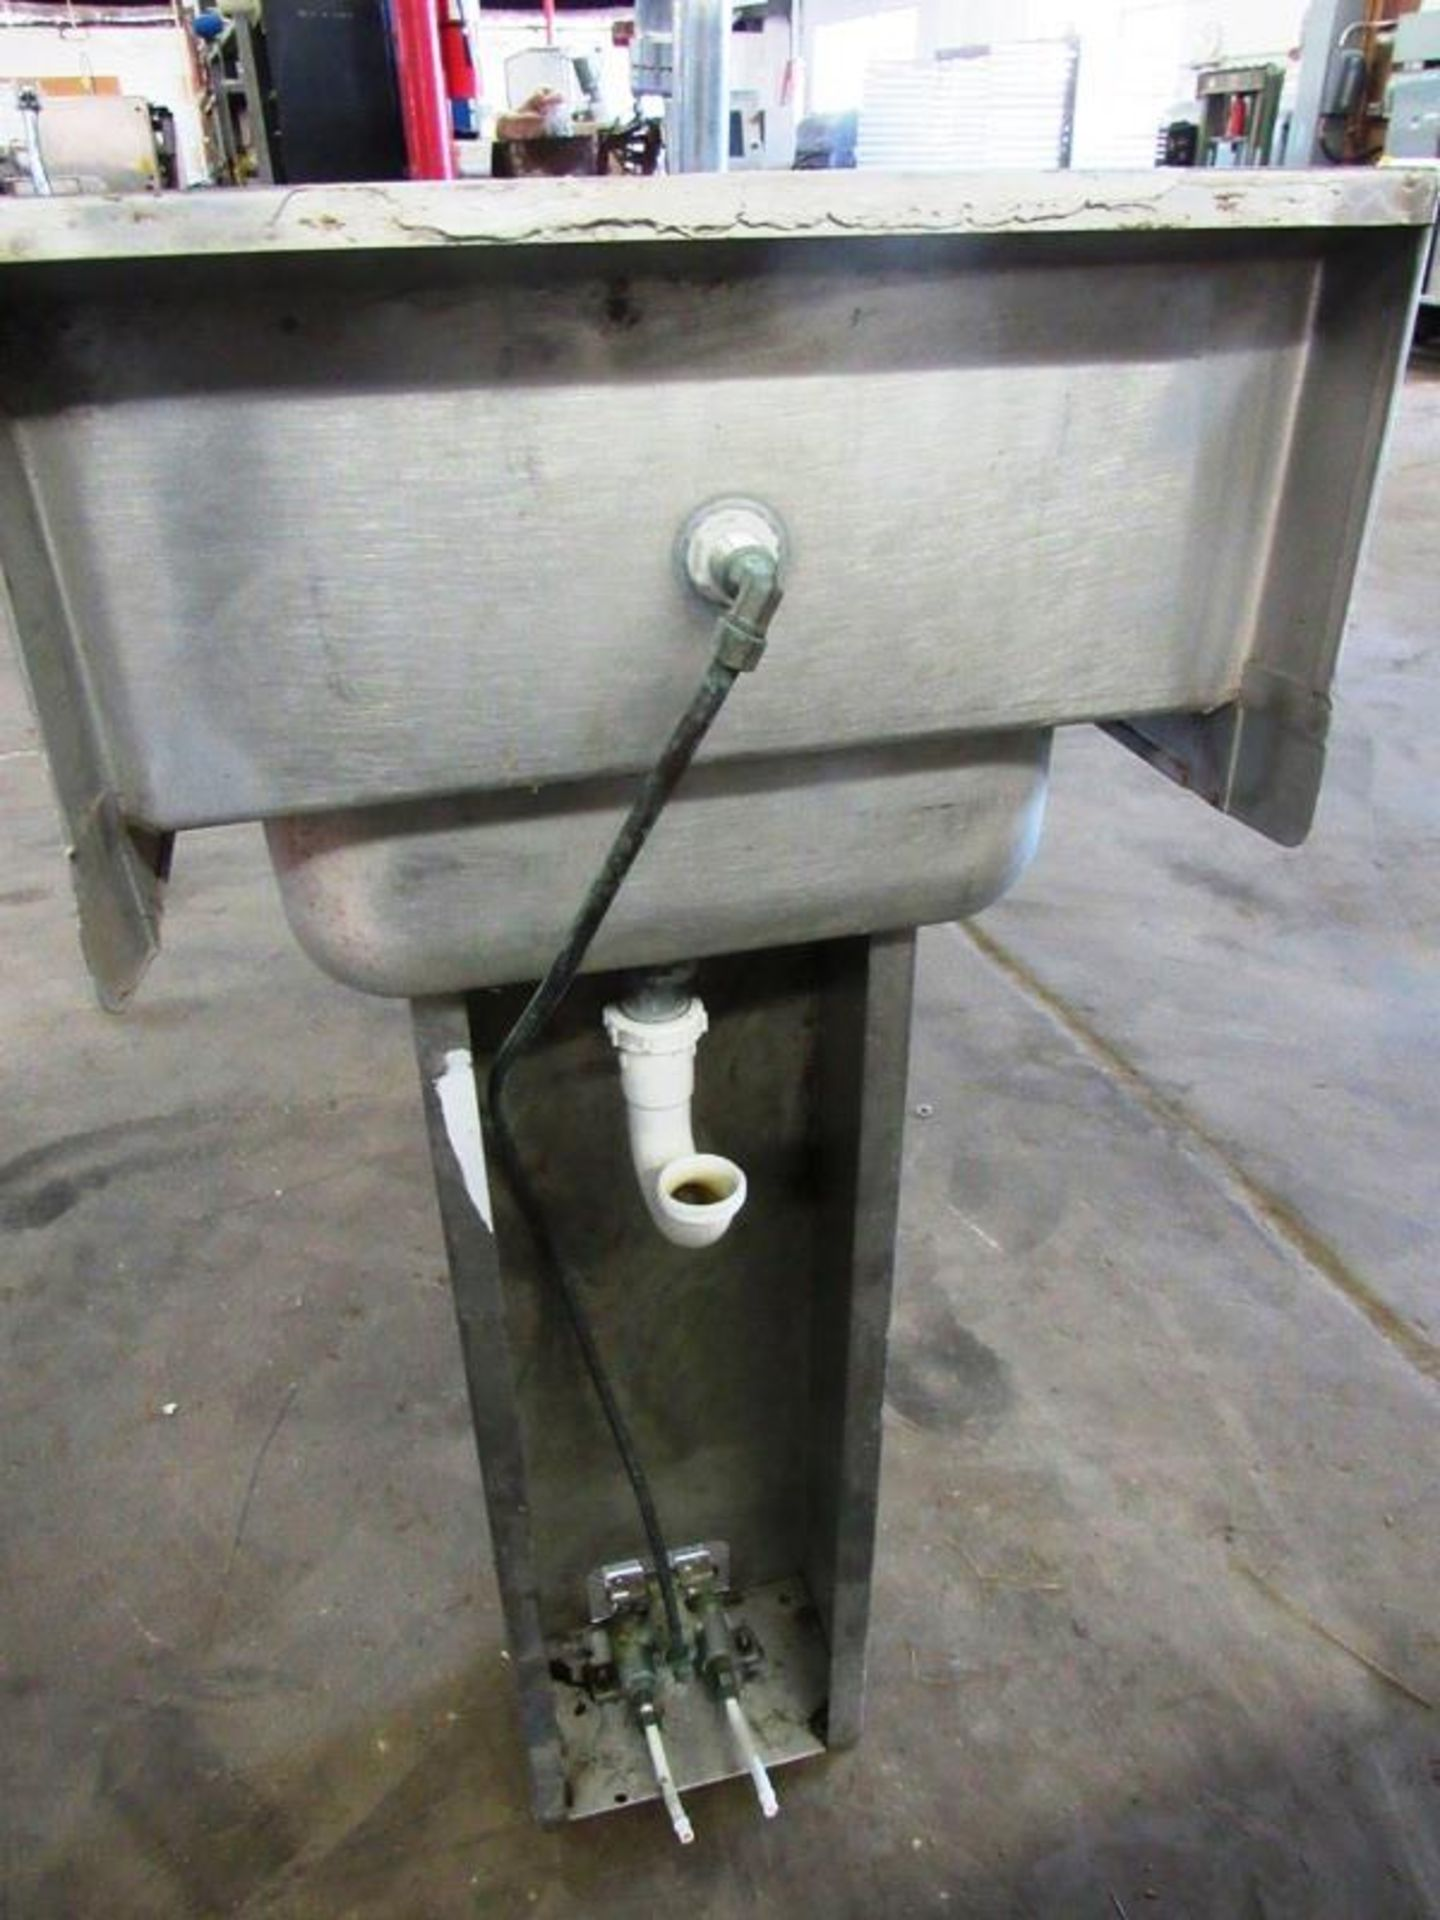 "Stainless Steel Sink, 10"" W X 14"" L single faucet, foot pedal activation - Image 2 of 2"